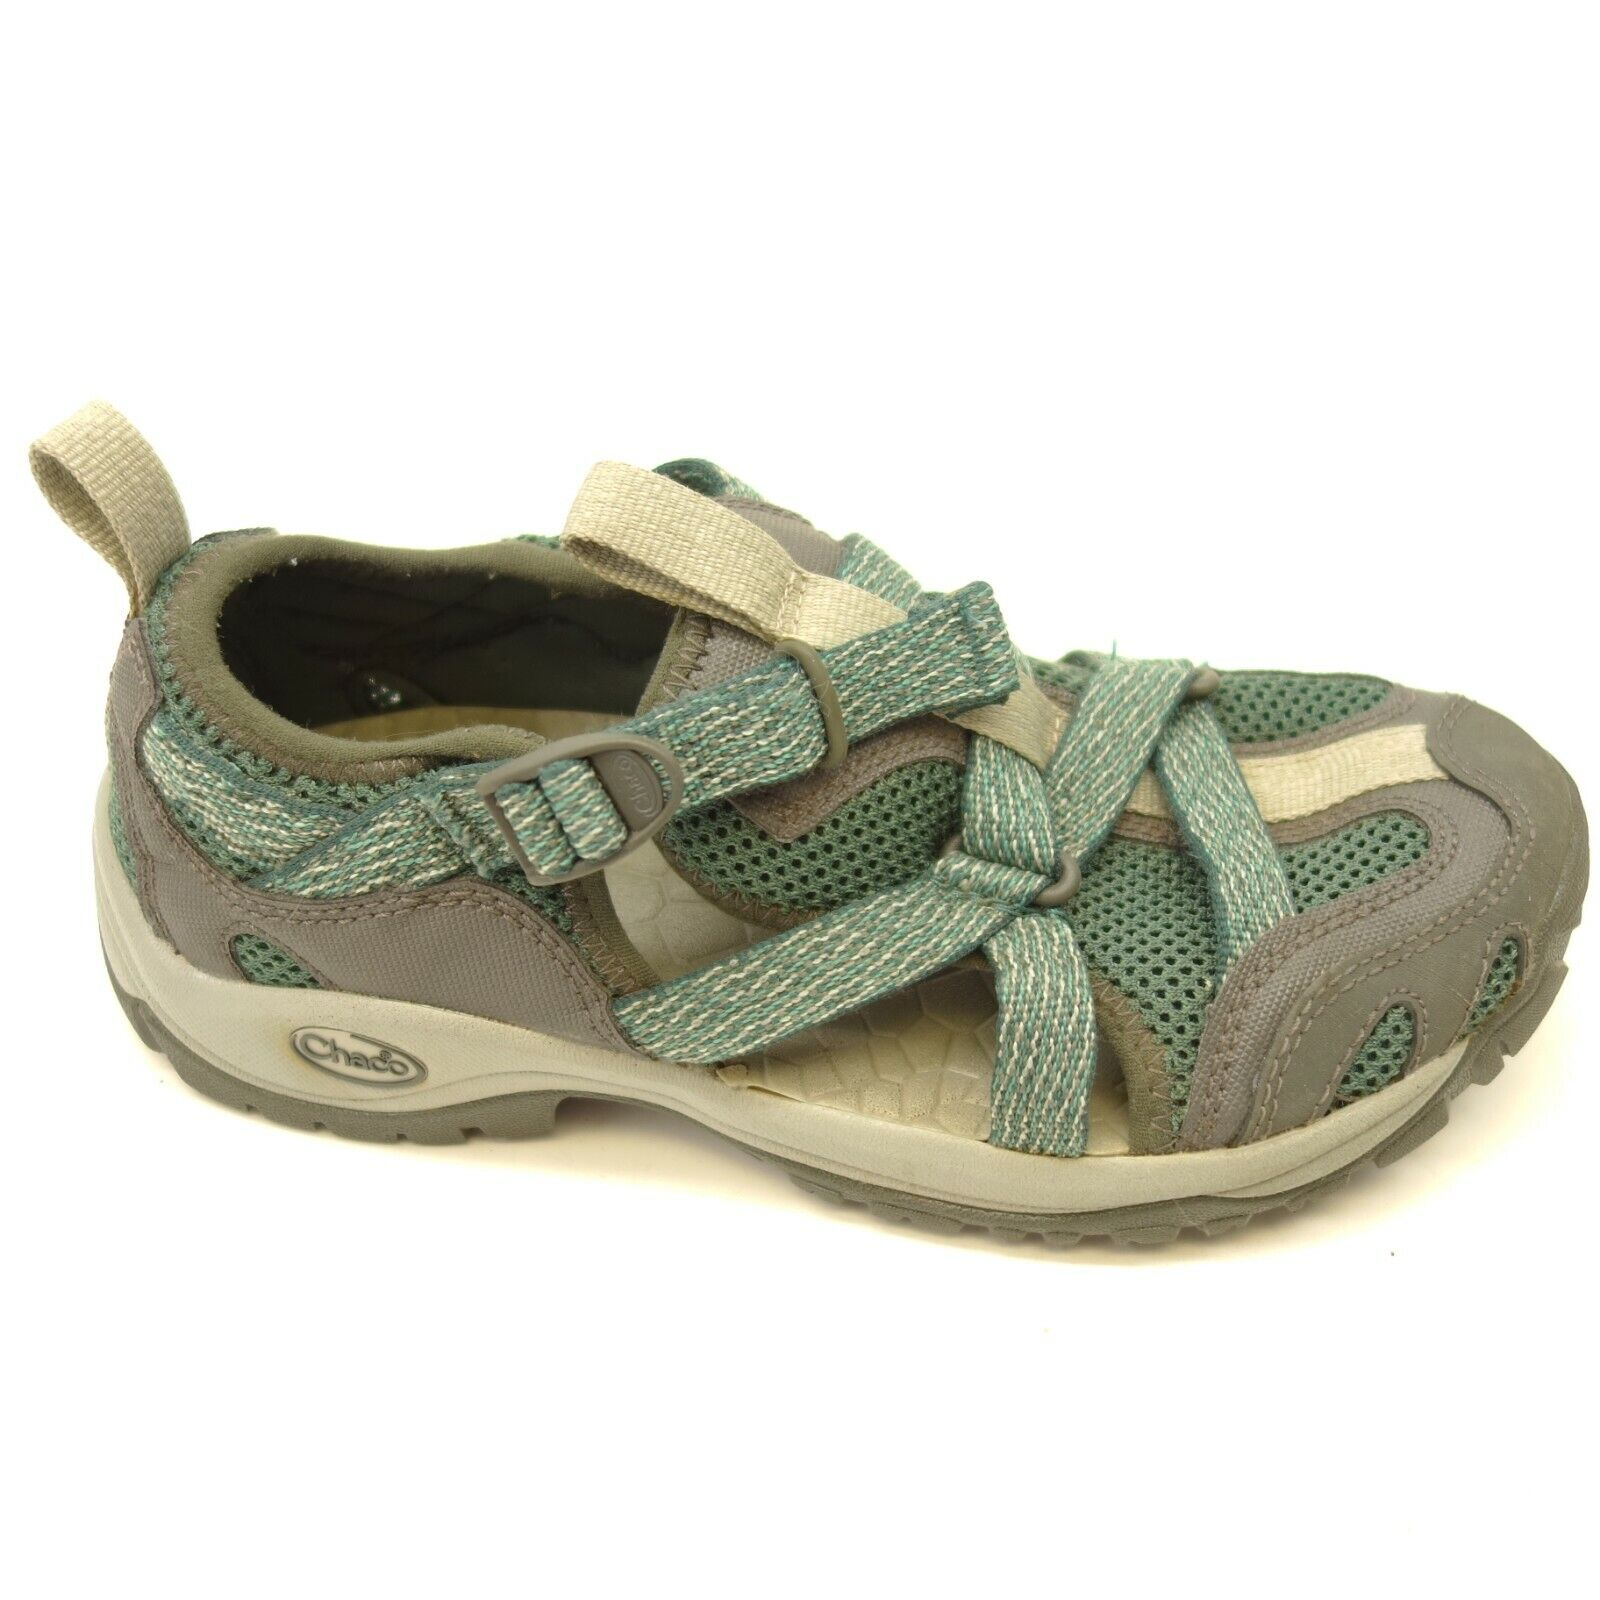 Chaco Outcross Web Pro US 6 EU 37 Athletic Ventilating Outdoor Womens shoes